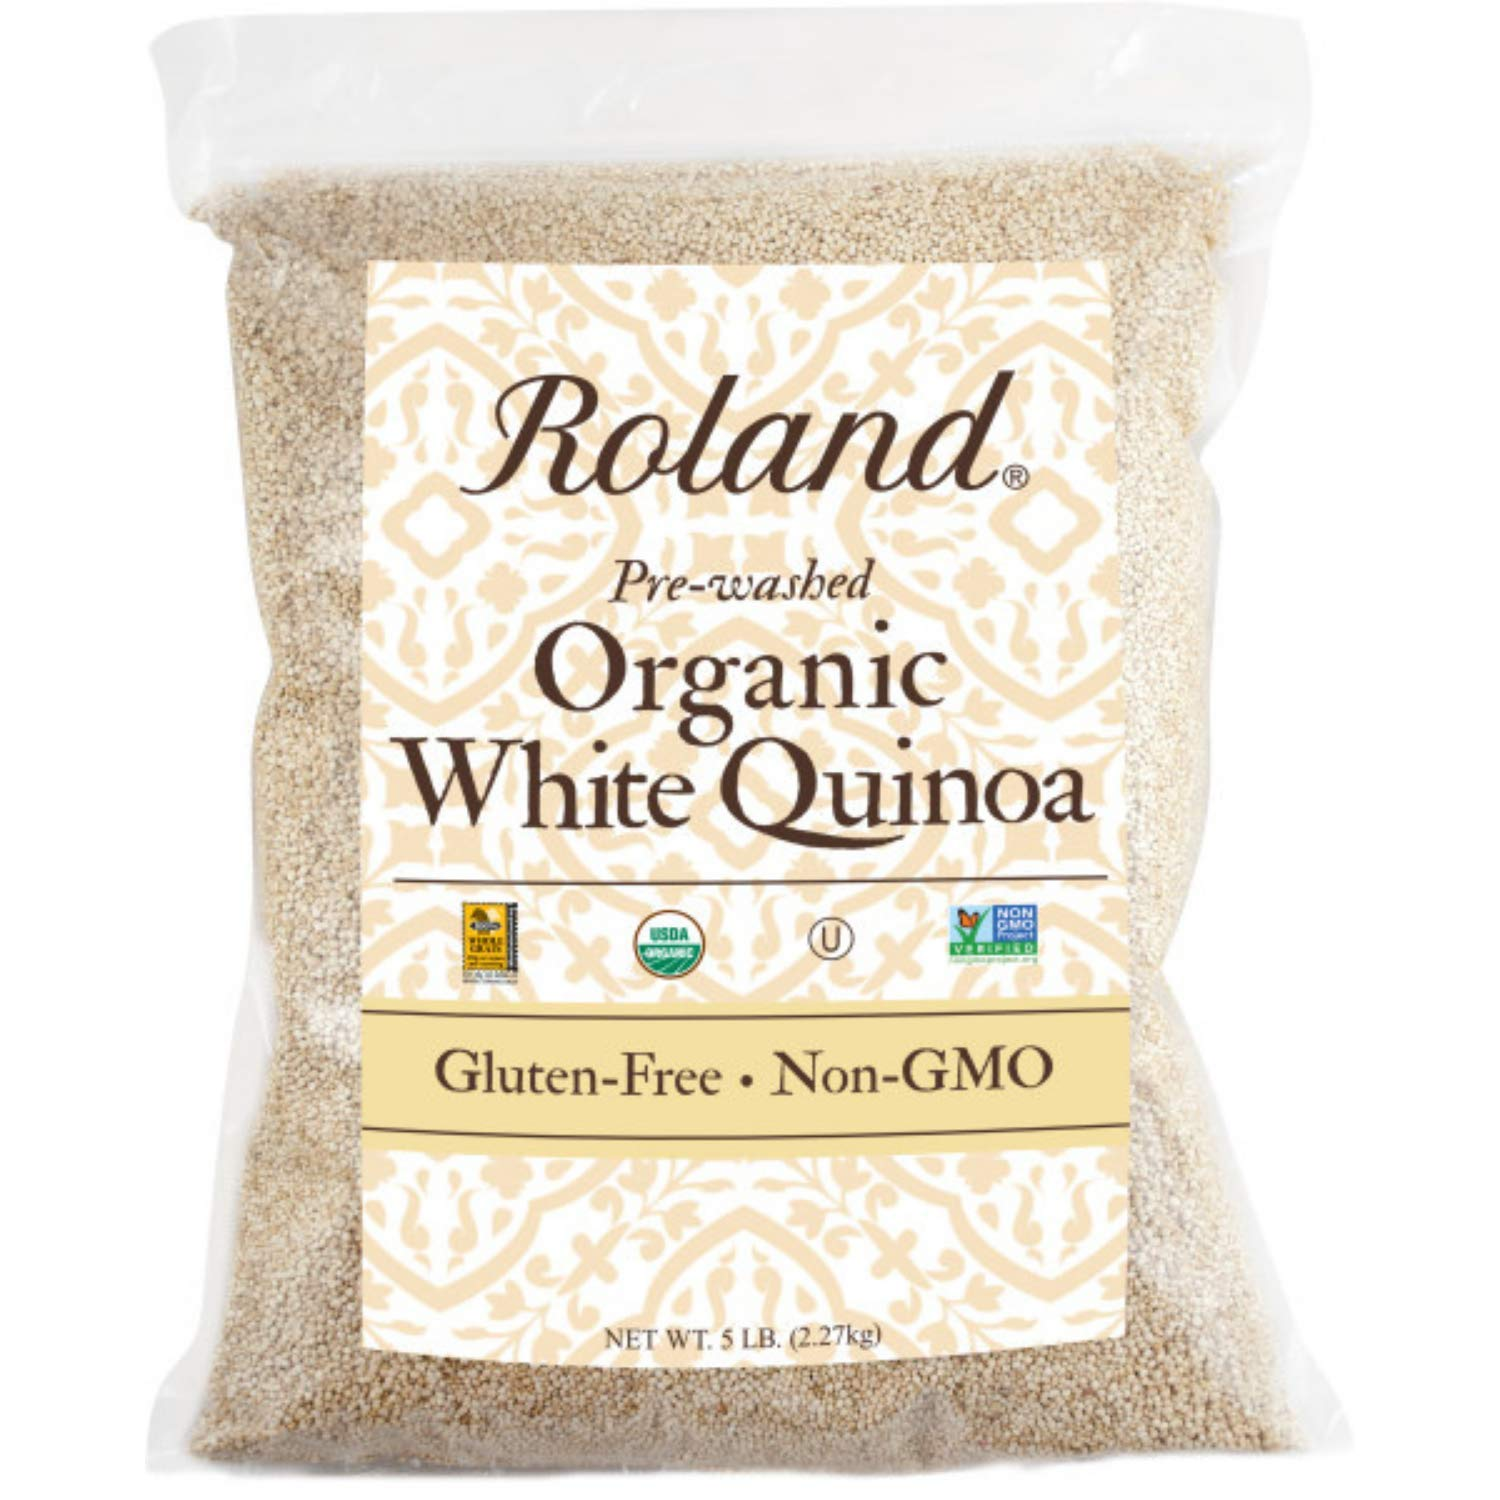 Roland Foods Organic White Quinoa, Pre-washed, Specialty Imported Food, 5 Lb Bag